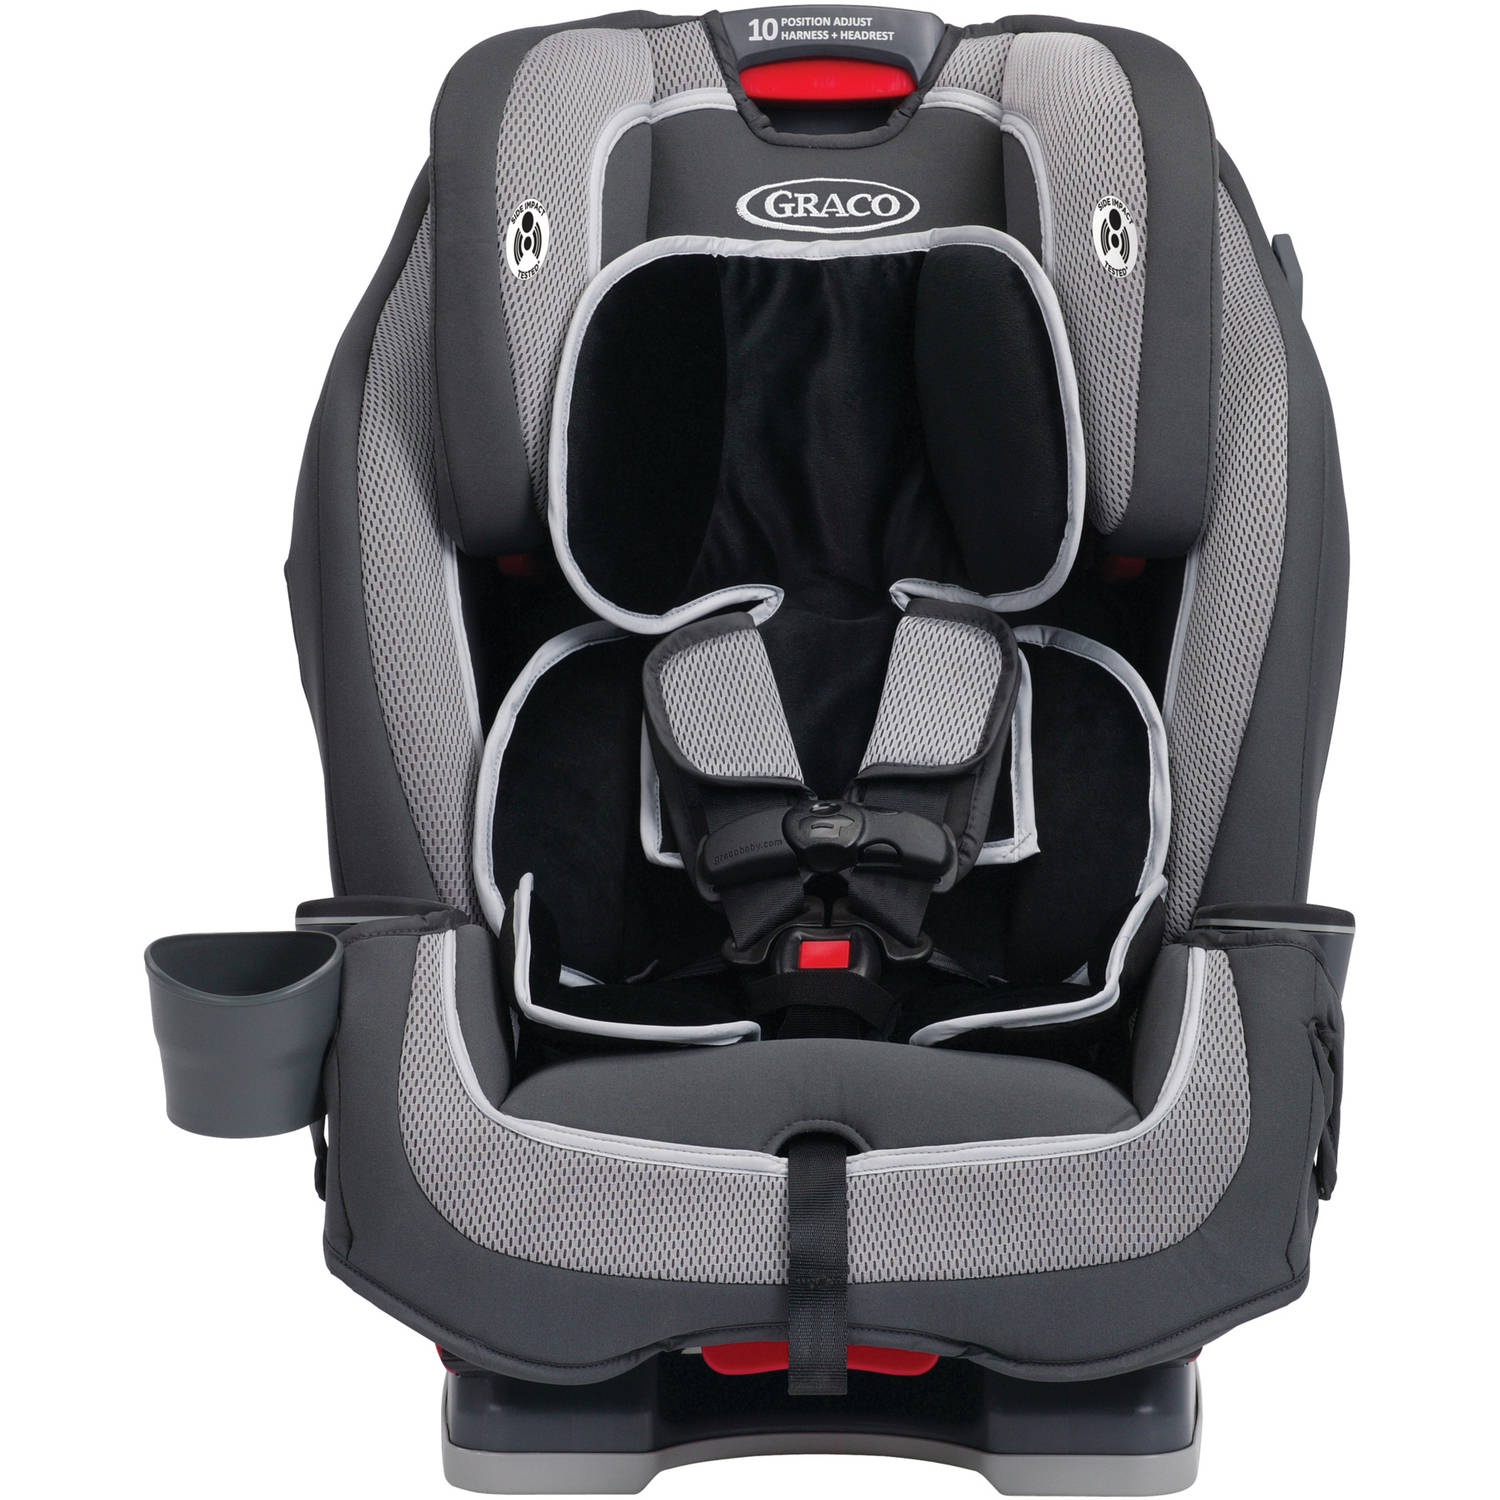 Graco Milestone All-in-1 Convertible Car Seat, Choose Your Pattern